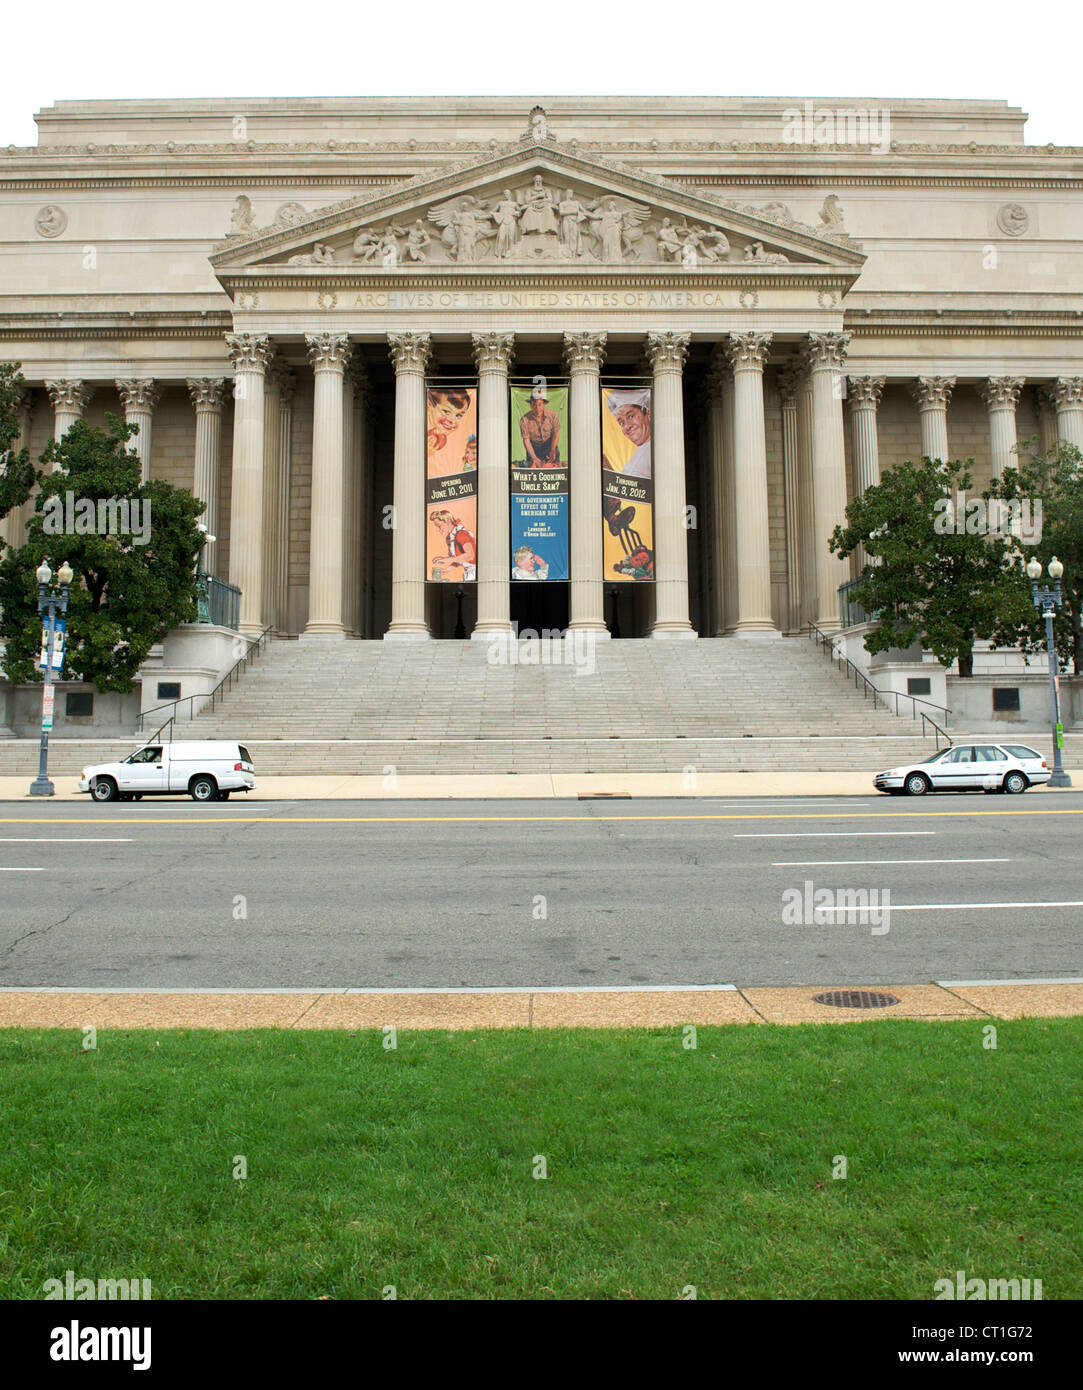 National Archives building in Washington DC, USA. - Stock Image